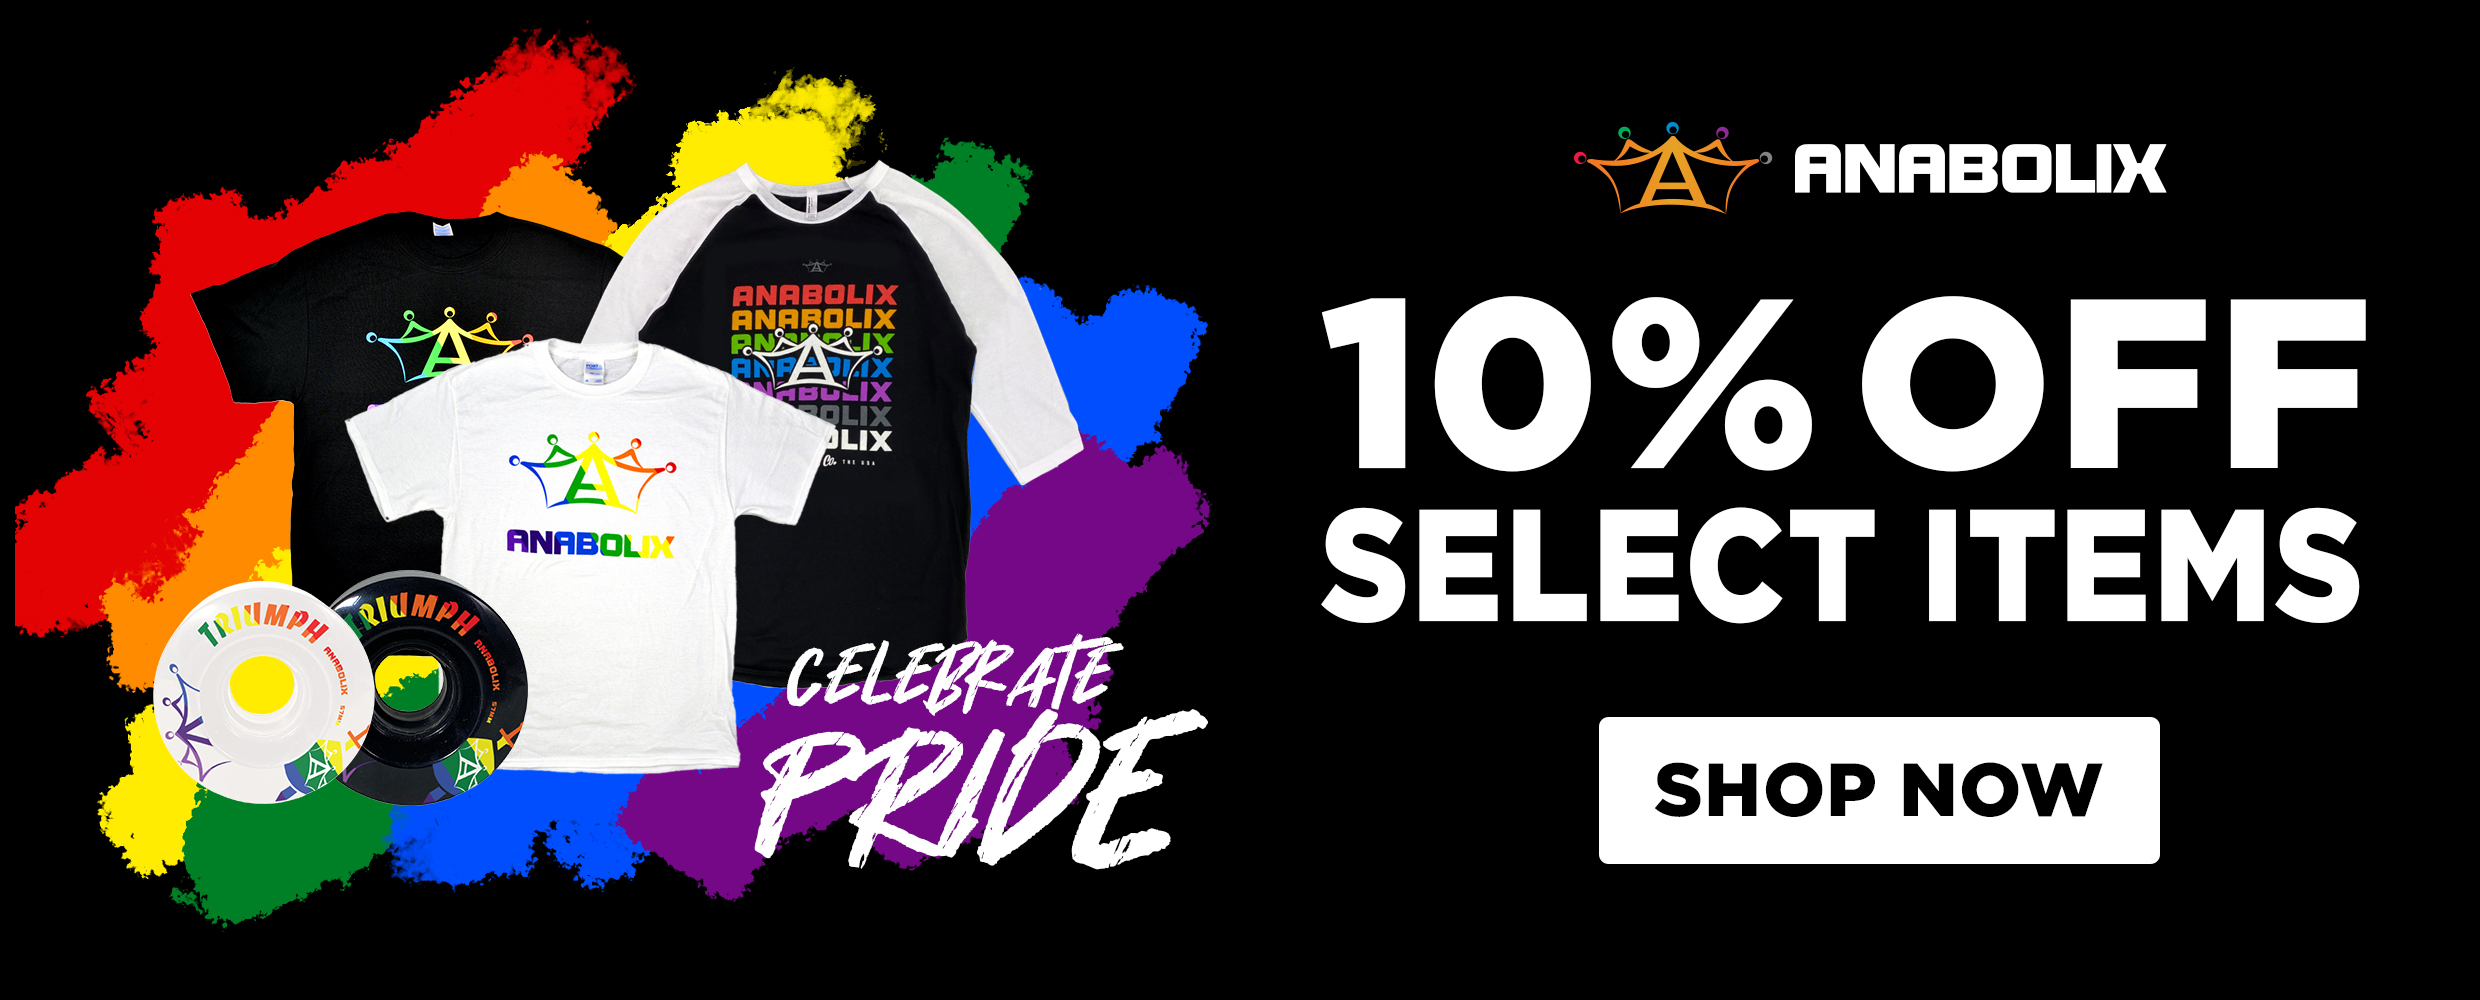 anabolix pride month 10% off select items